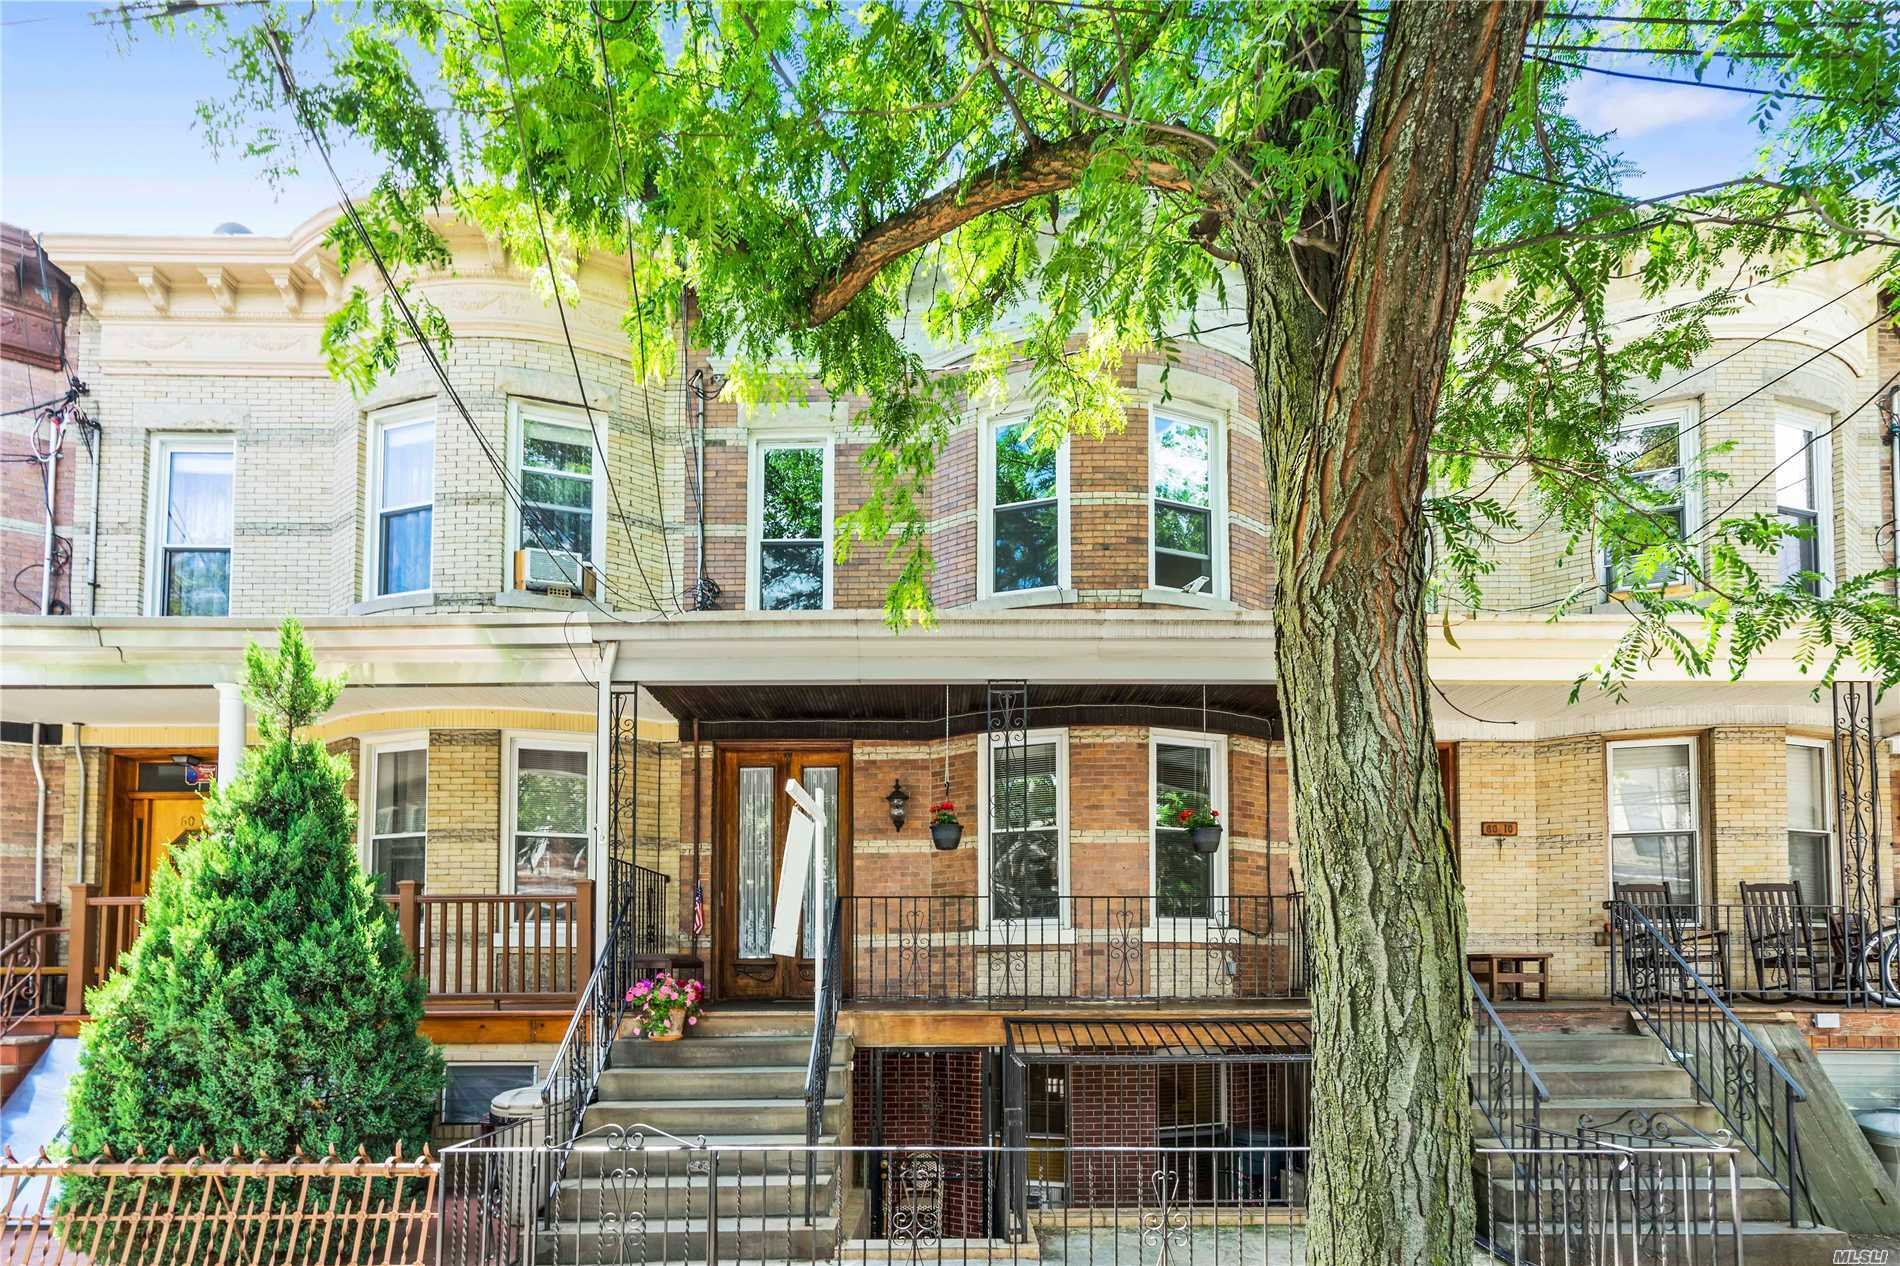 Beautiful 3-Family Brick Located Walking Distance To L Or M Train. Entire House Has Been Completely Renovated New Plumbing, Electric, Insulation And 3 Separate Heating Zones, . Finished Basement With Outside Entrance Where Is Legal Third Two Bedroom Apartment. Move -In Ready